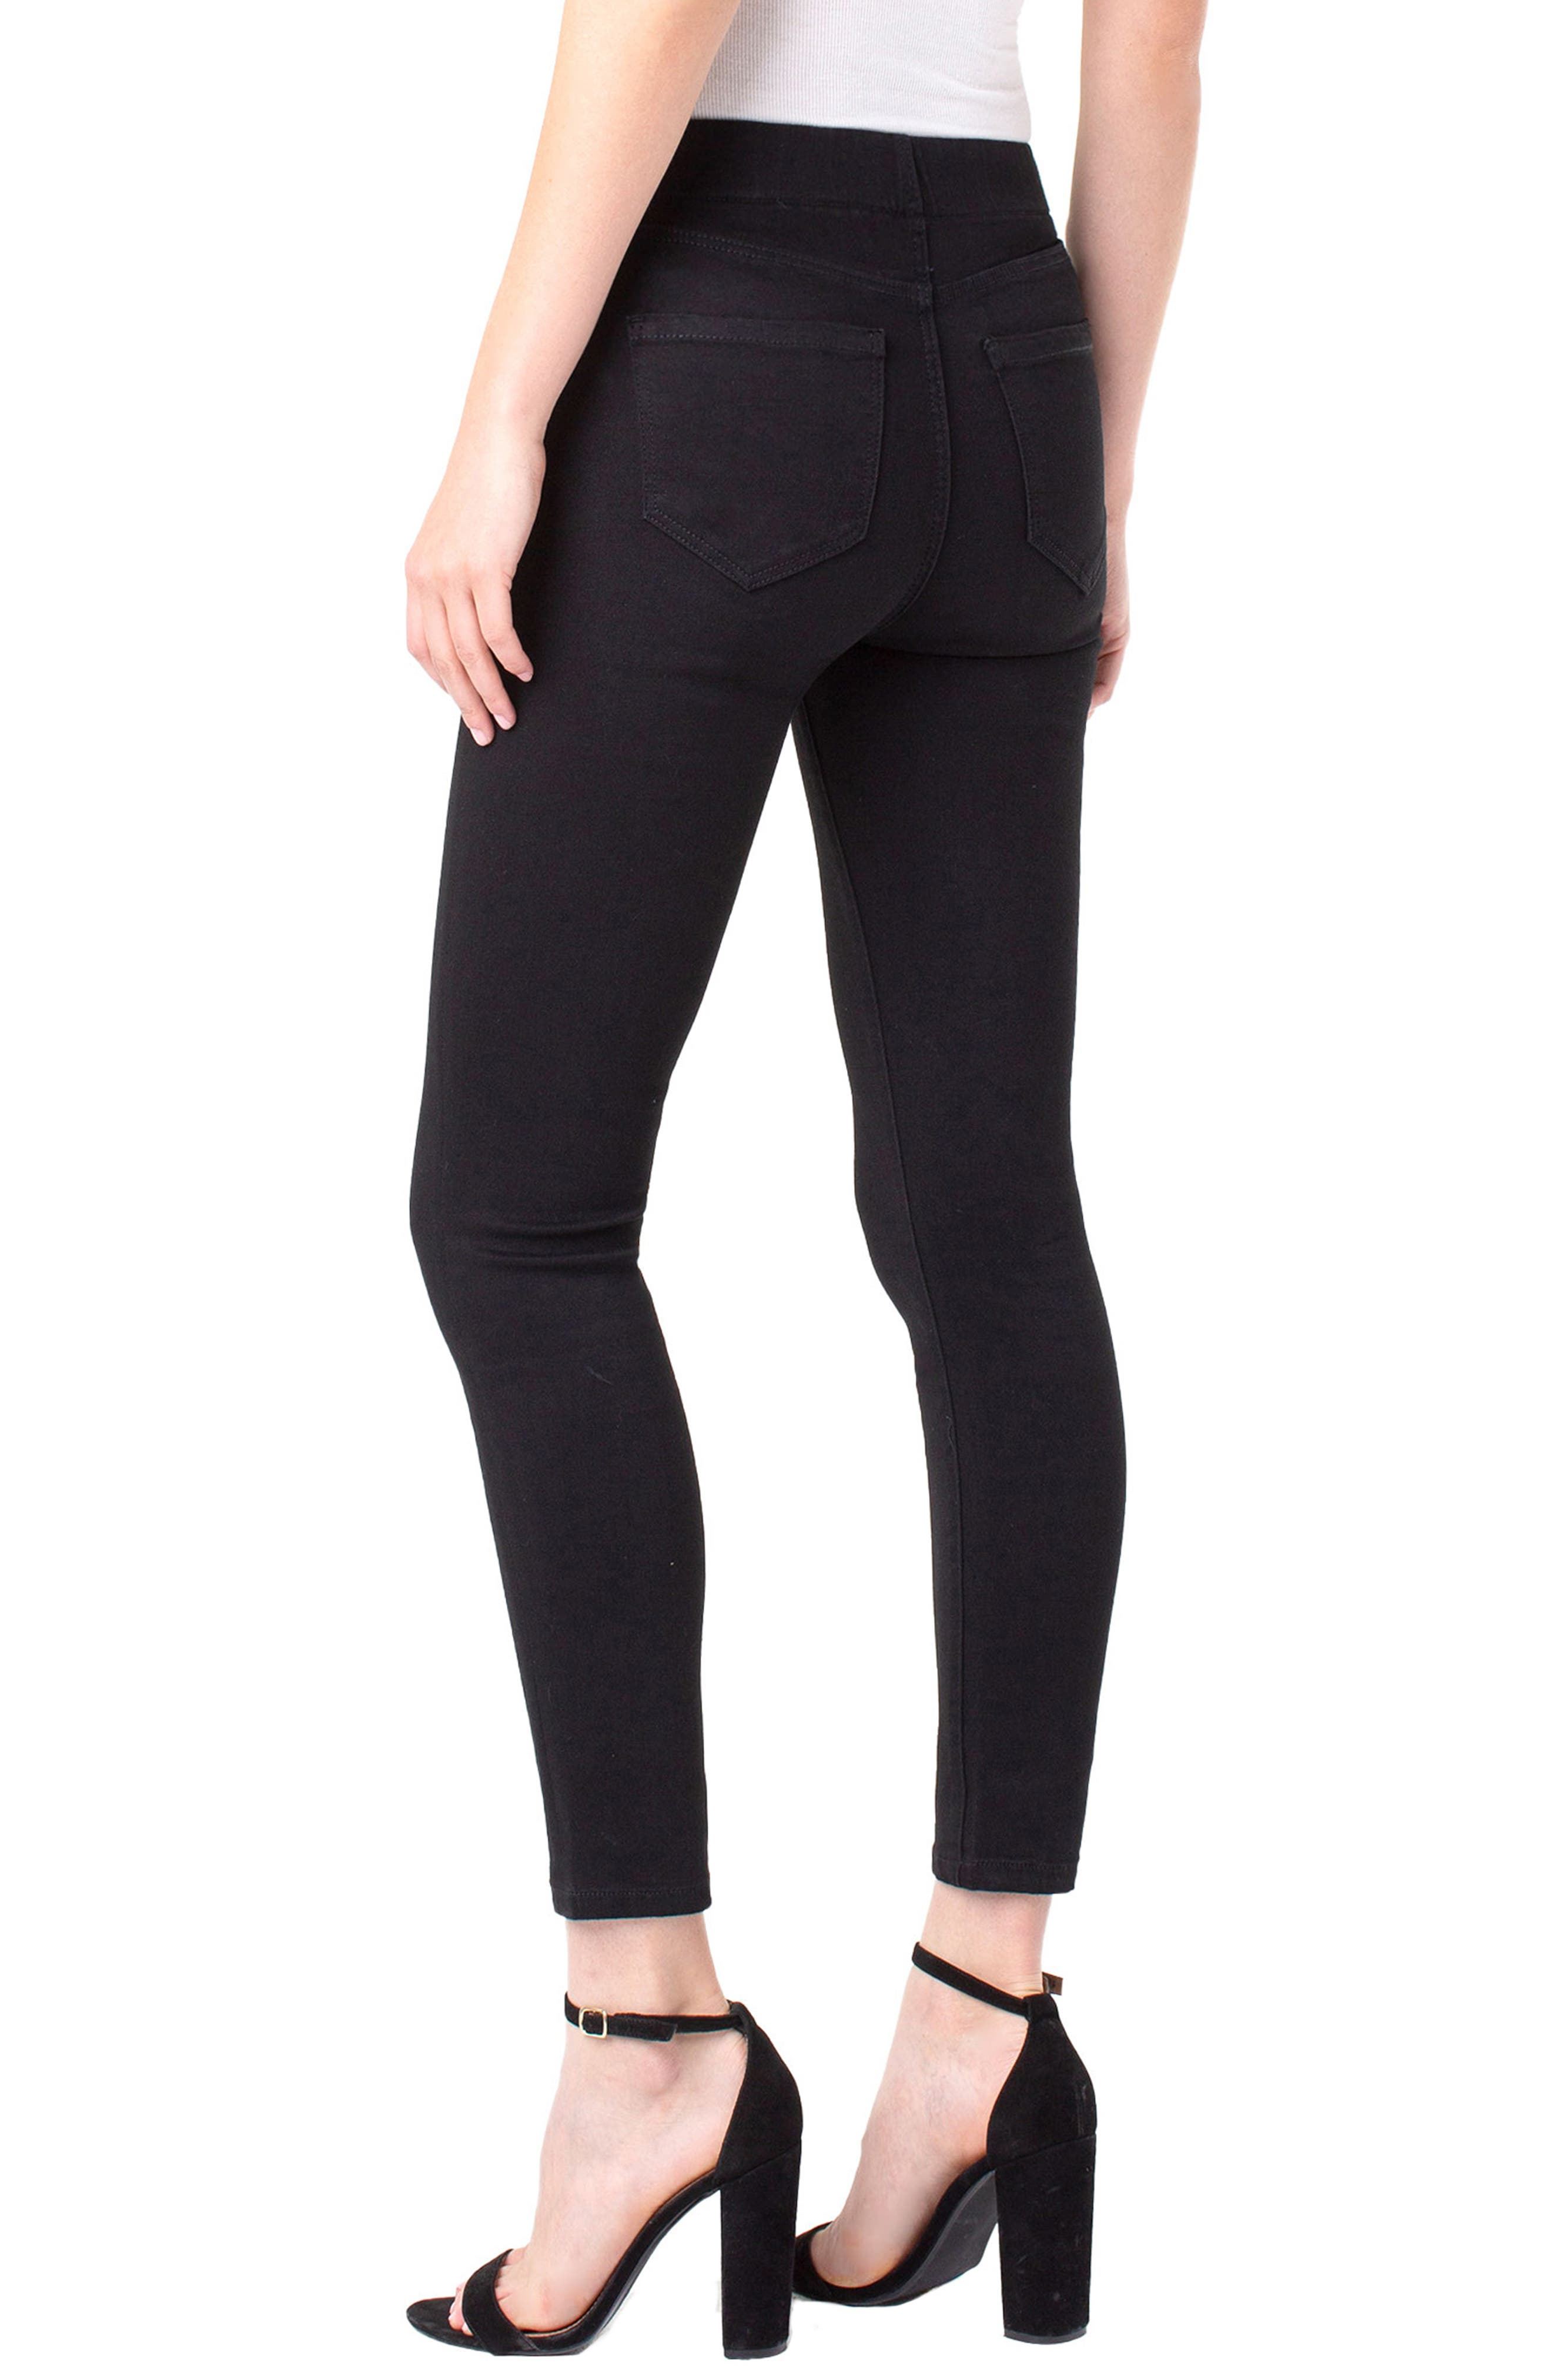 Chloe Pull-On Stretch Skinny Ankle Jeans,                             Alternate thumbnail 7, color,                             BLACK RINSE